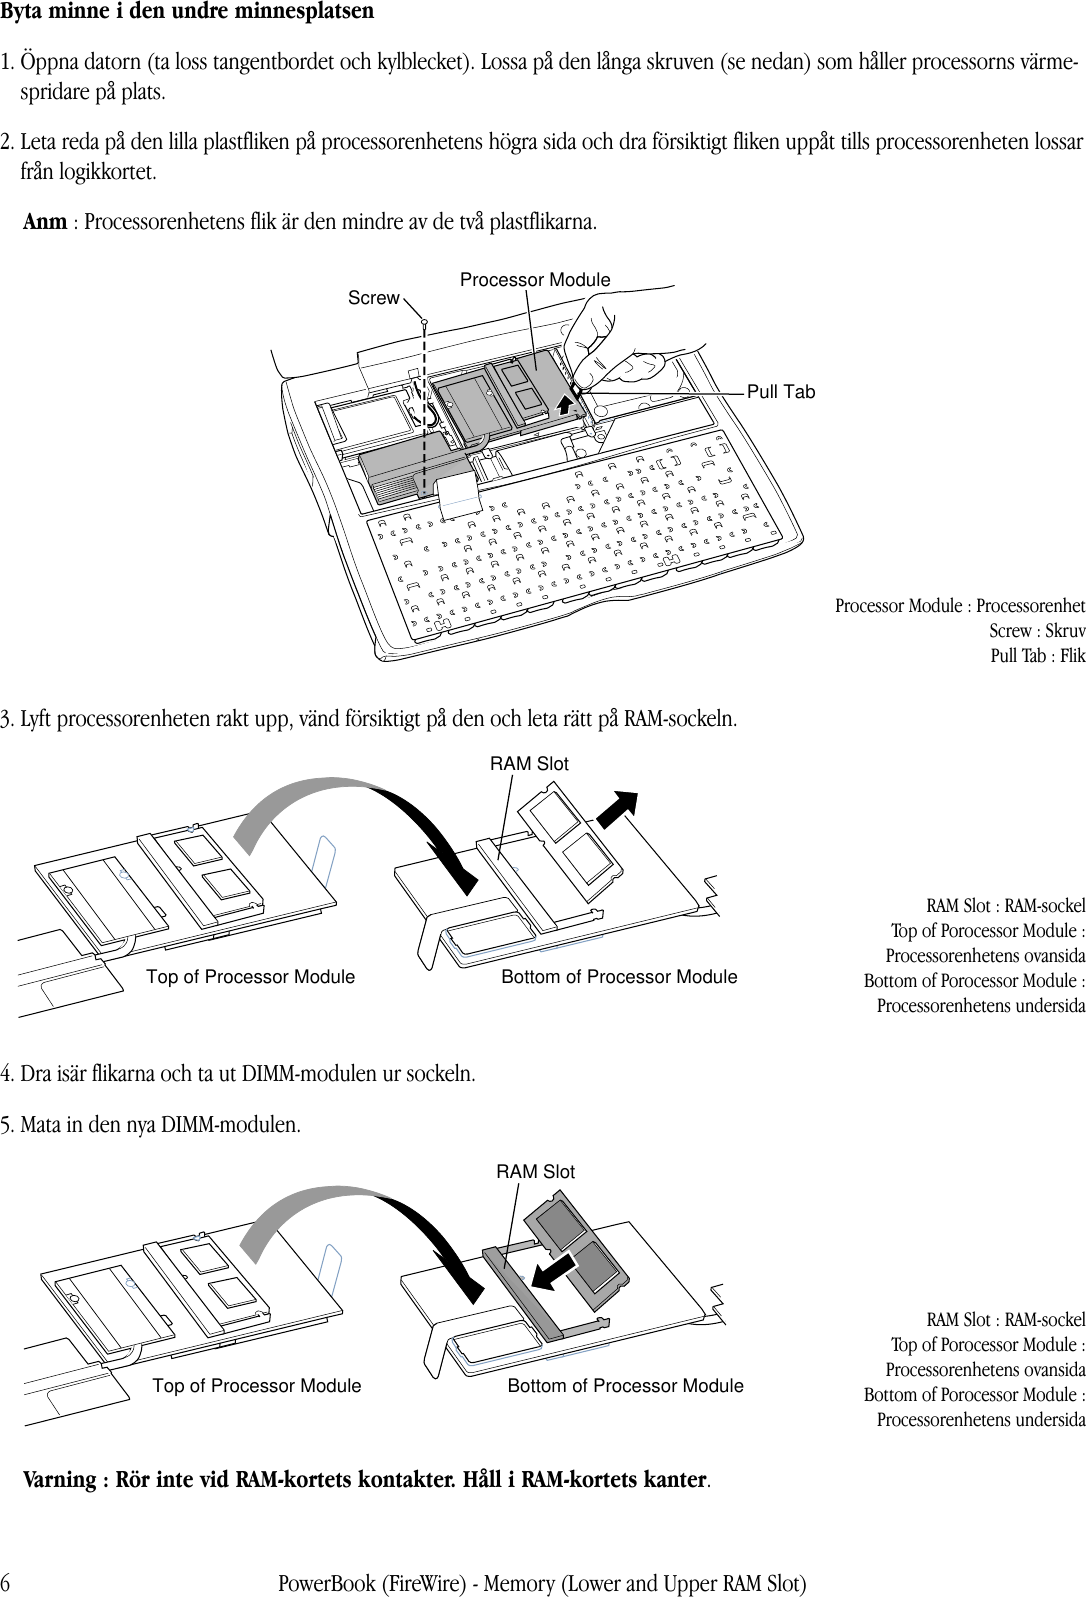 Apple Powerbookfirewire Memory User Manual Power Bookfire Wire Firewire Diagram Page 6 Of 9 Book